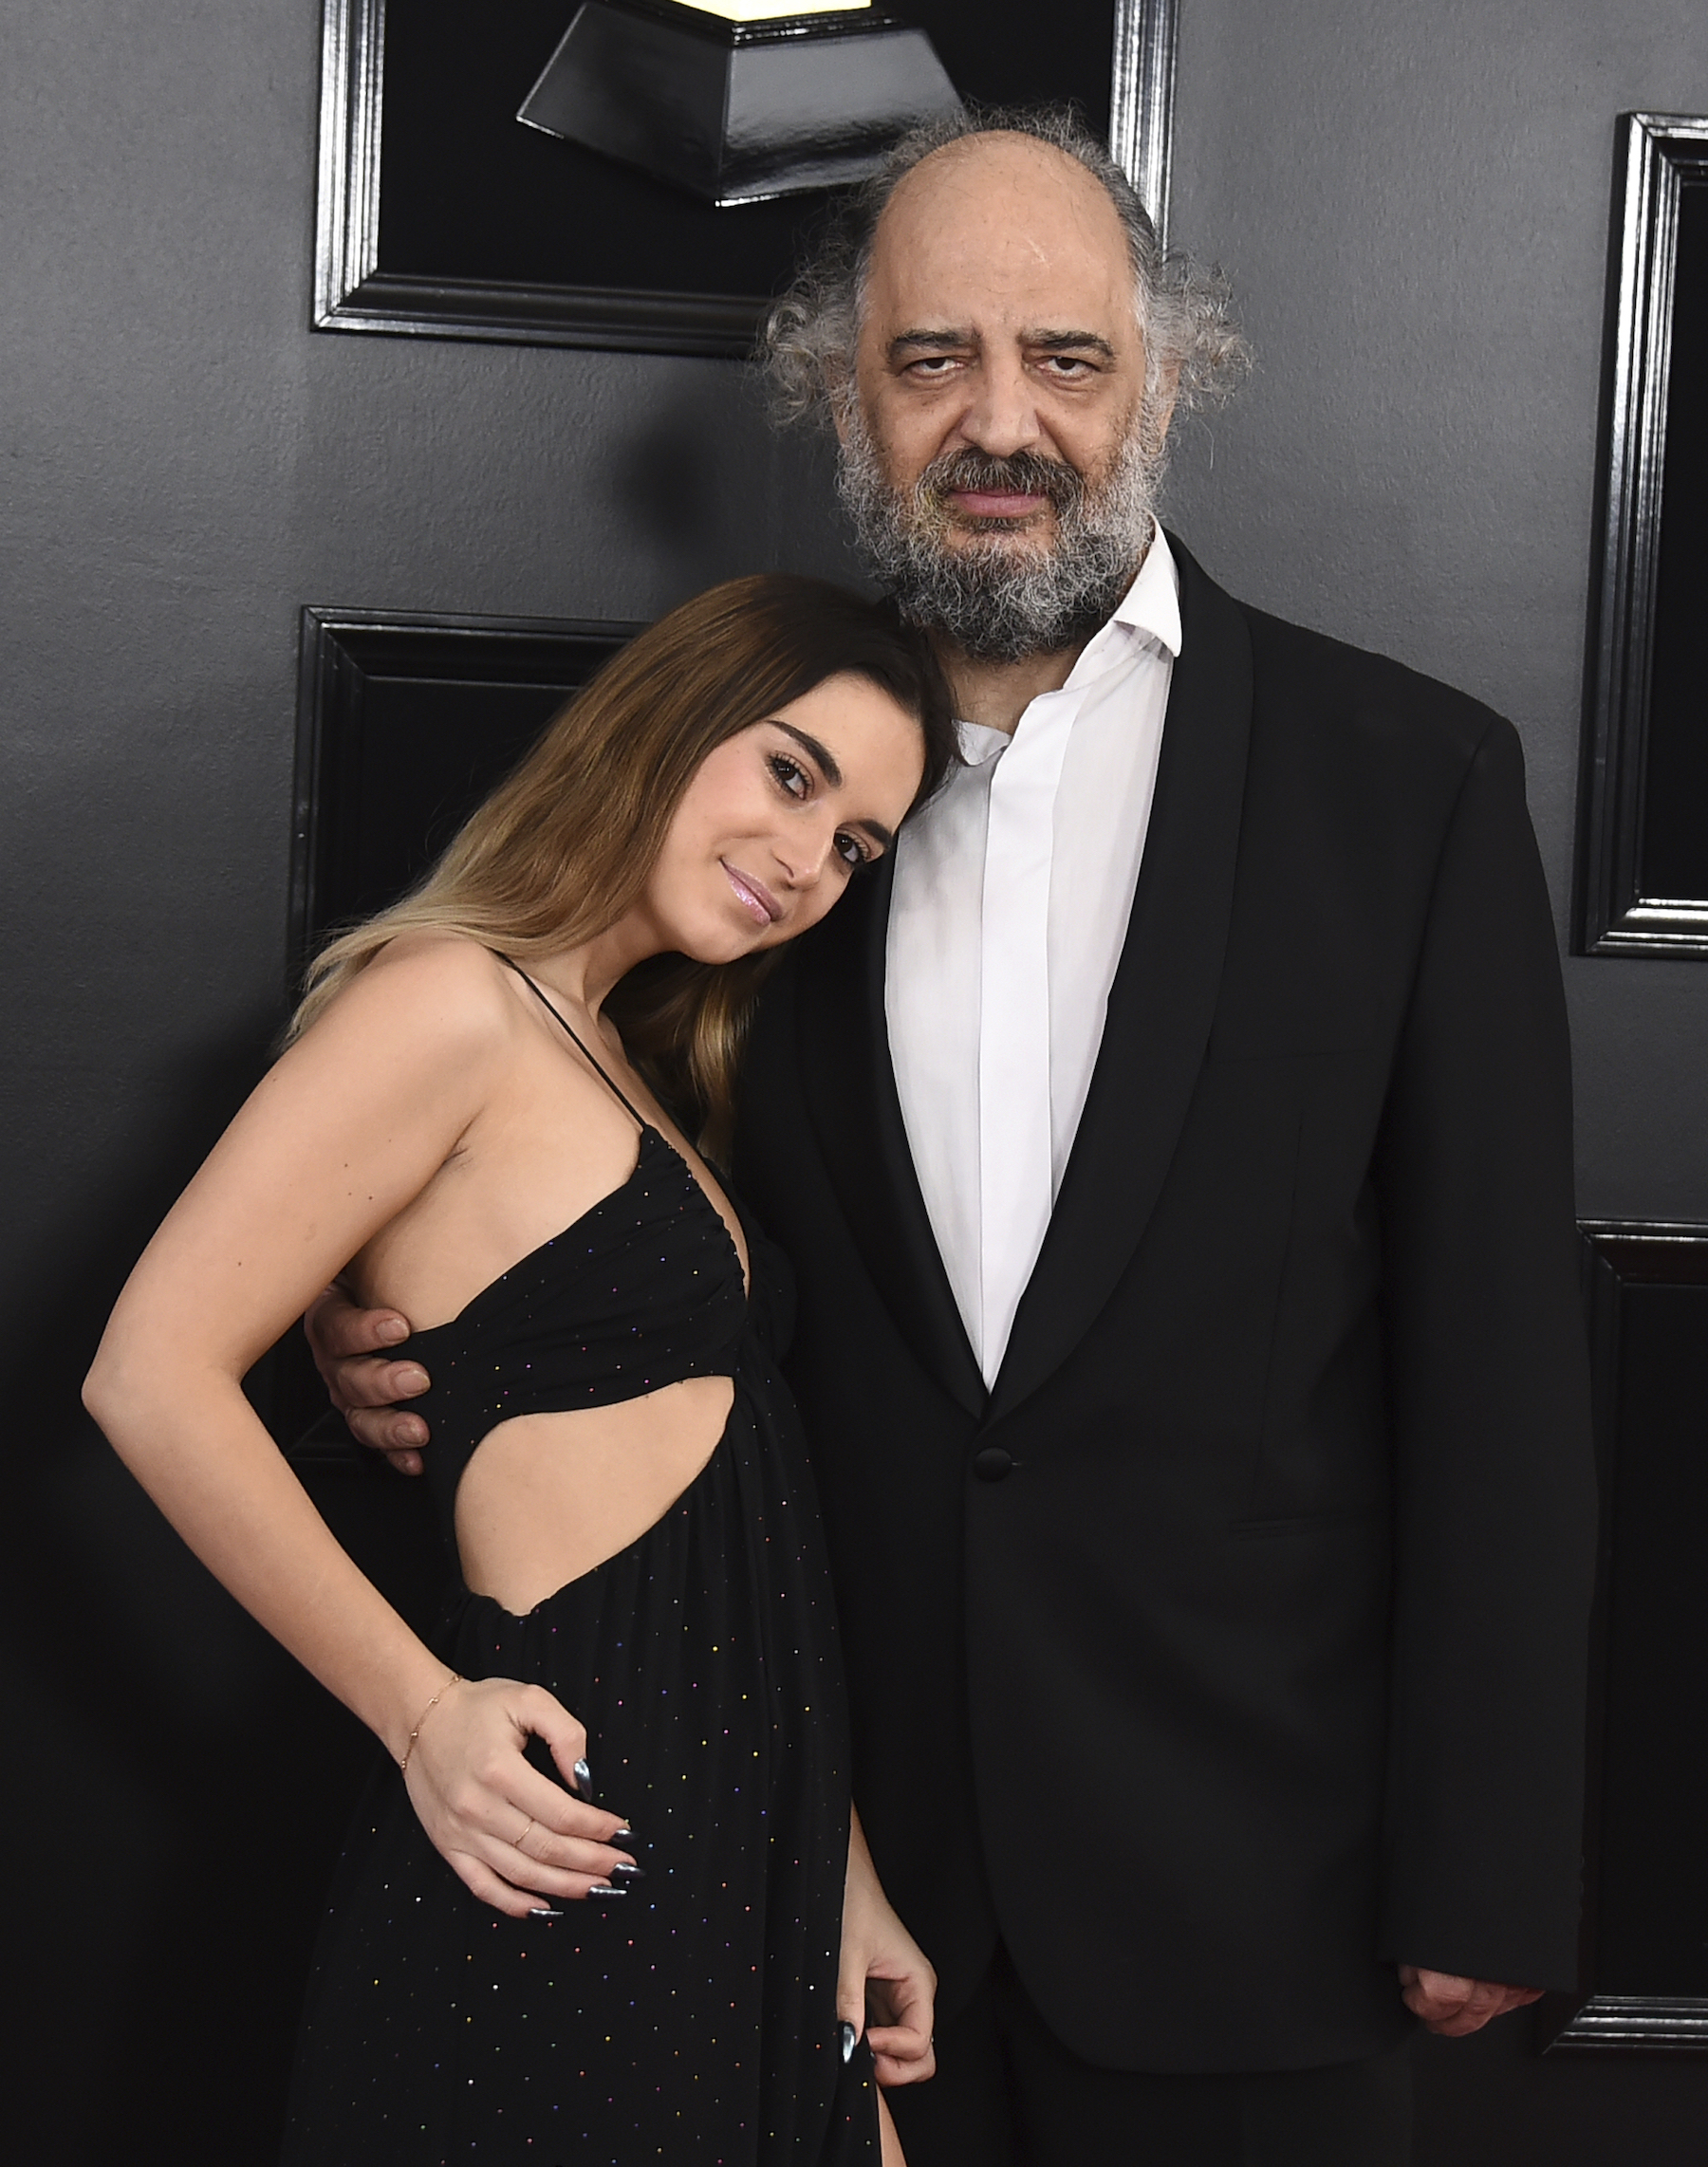 "<div class=""meta image-caption""><div class=""origin-logo origin-image ap""><span>AP</span></div><span class=""caption-text"">Anastasia Blomstrand, left, and Sergey Erdenko arrive at the 61st annual Grammy Awards at the Staples Center on Sunday, Feb. 10, 2019, in Los Angeles. (Jordan Strauss/Invision/AP)</span></div>"